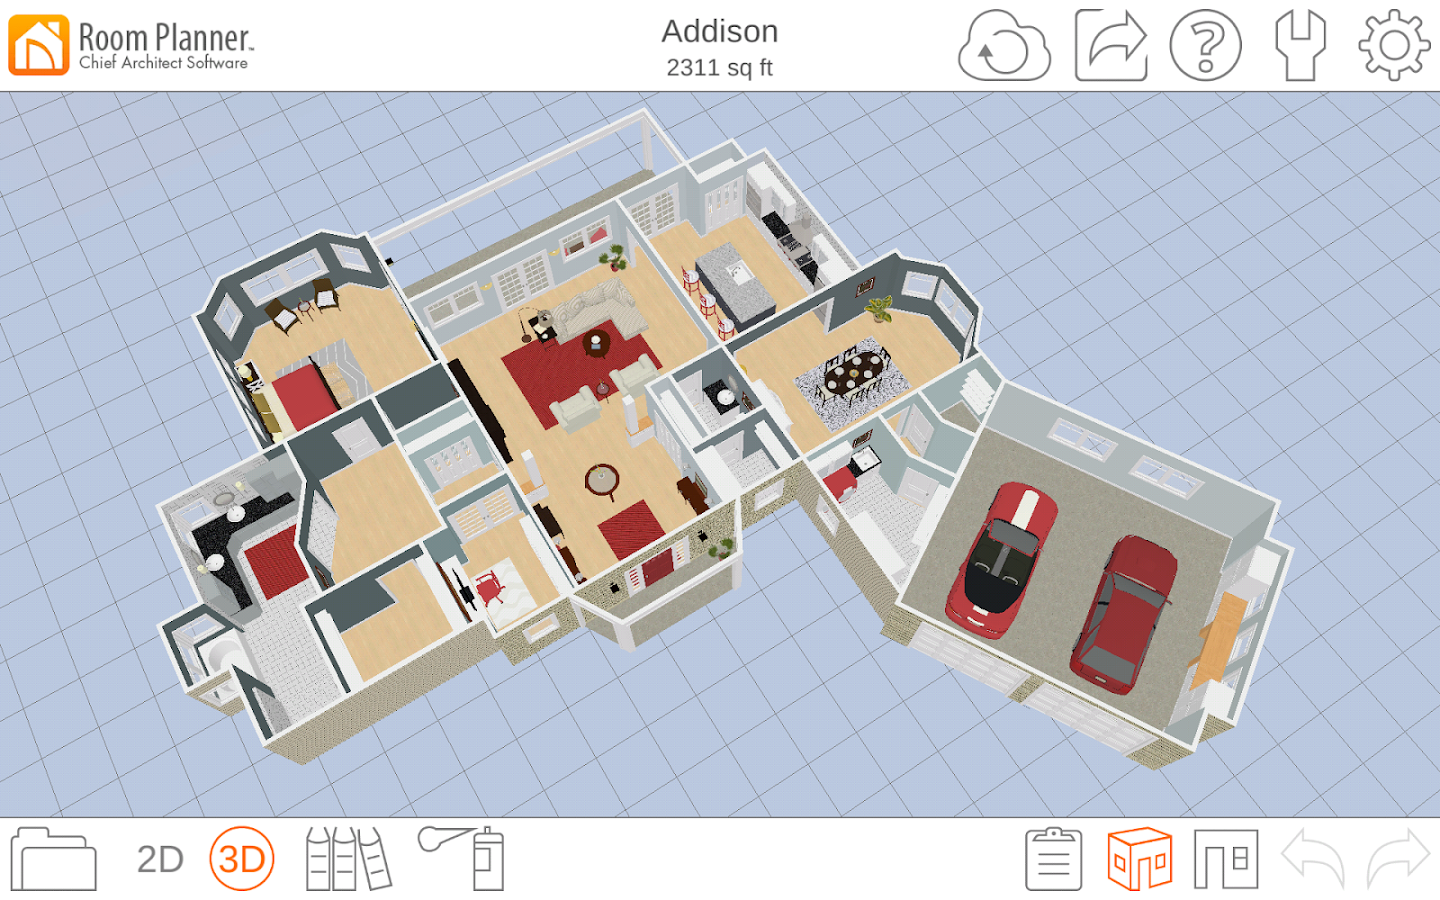 Room planner home design android apps on google play for Room planning software